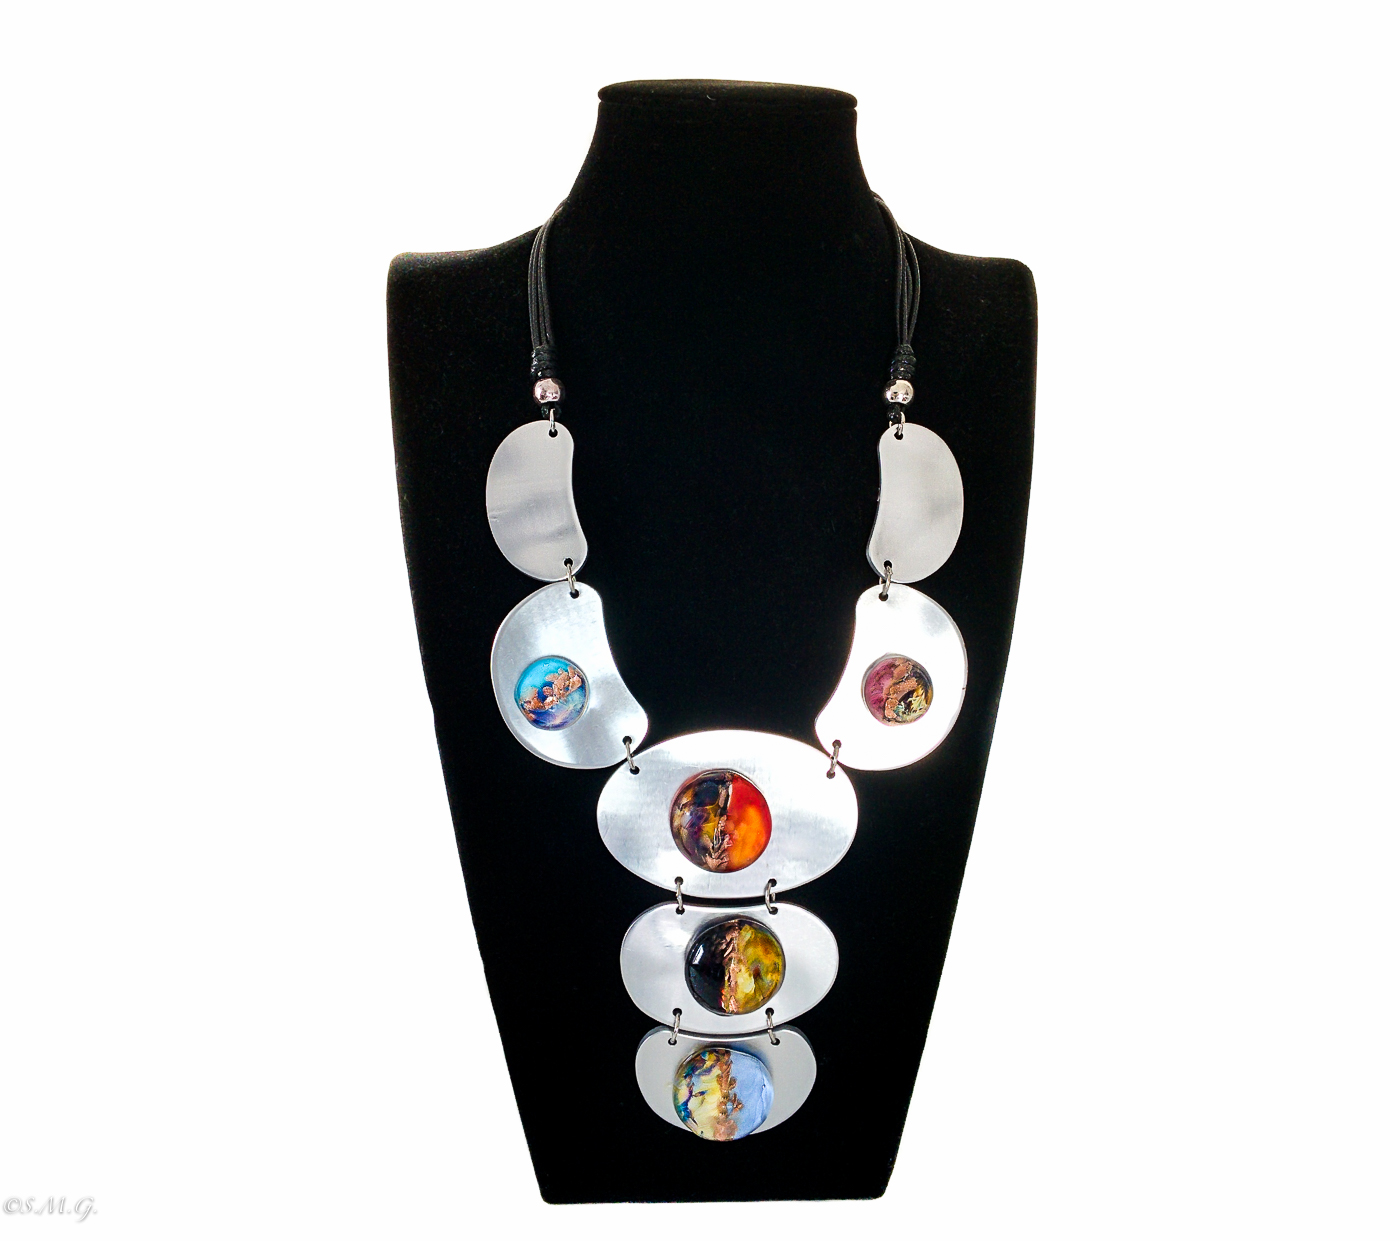 Murano Glass necklace with glass beads and metal plates